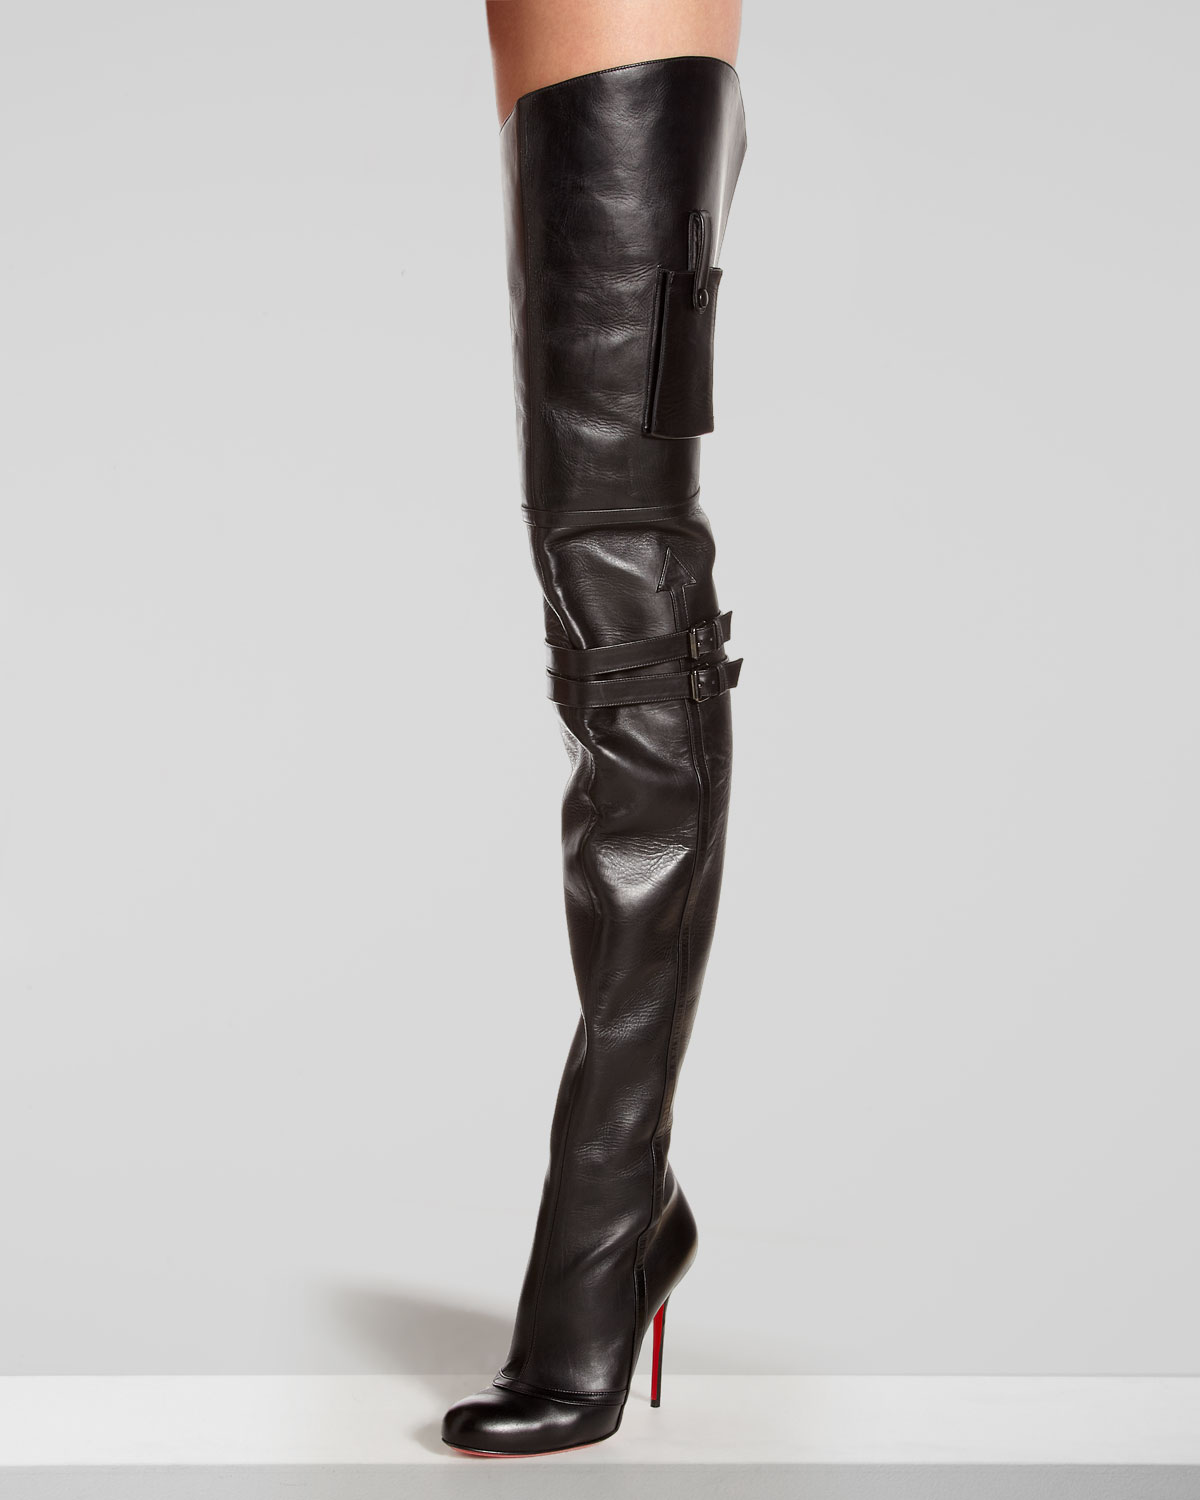 ff3373f8fbb Christian Louboutin Over The Knee Boots - Usefulresults